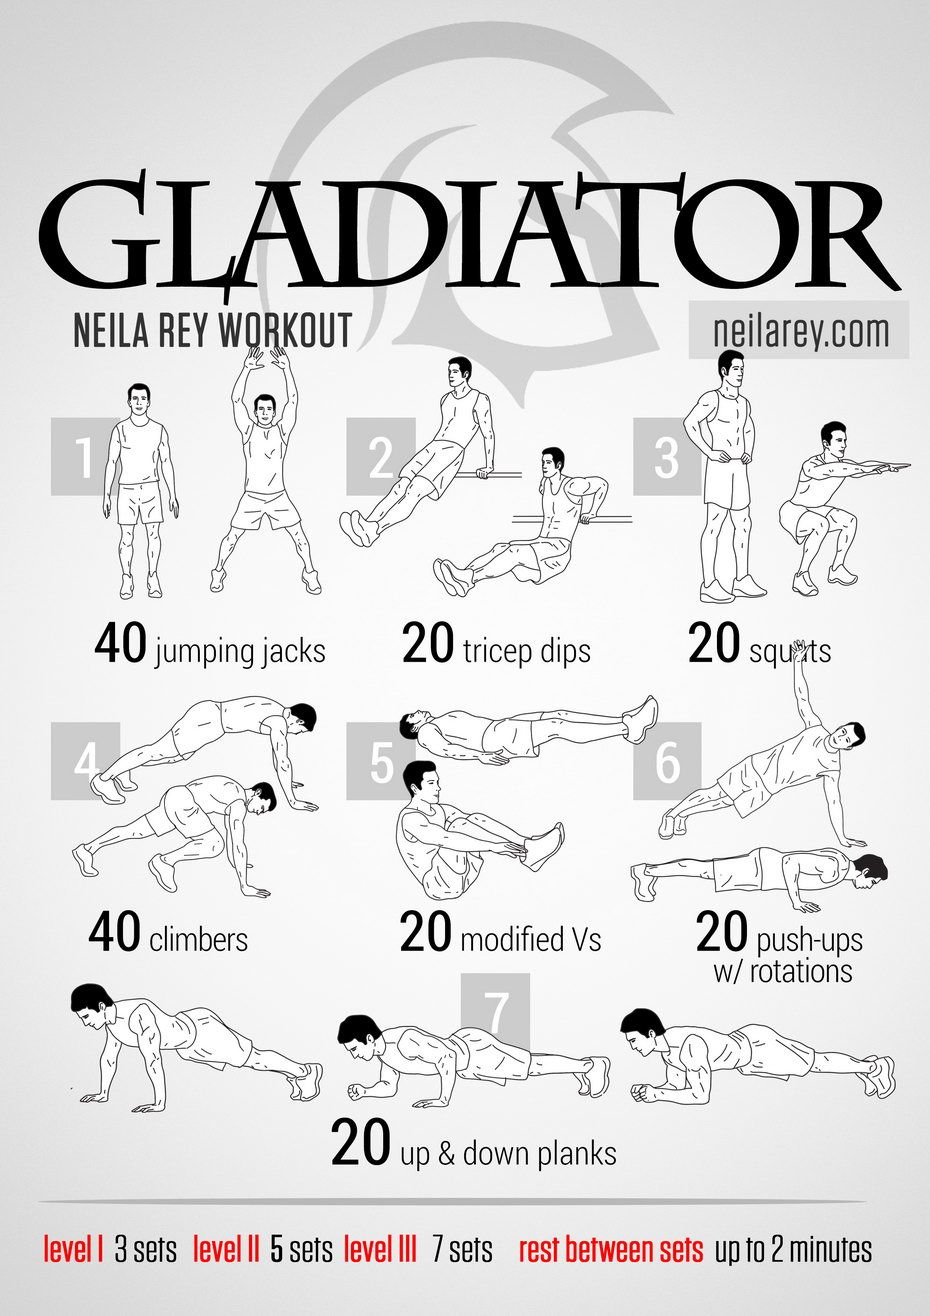 Gladiator Workout ... and being fit as Maximus is pretty cool too ...